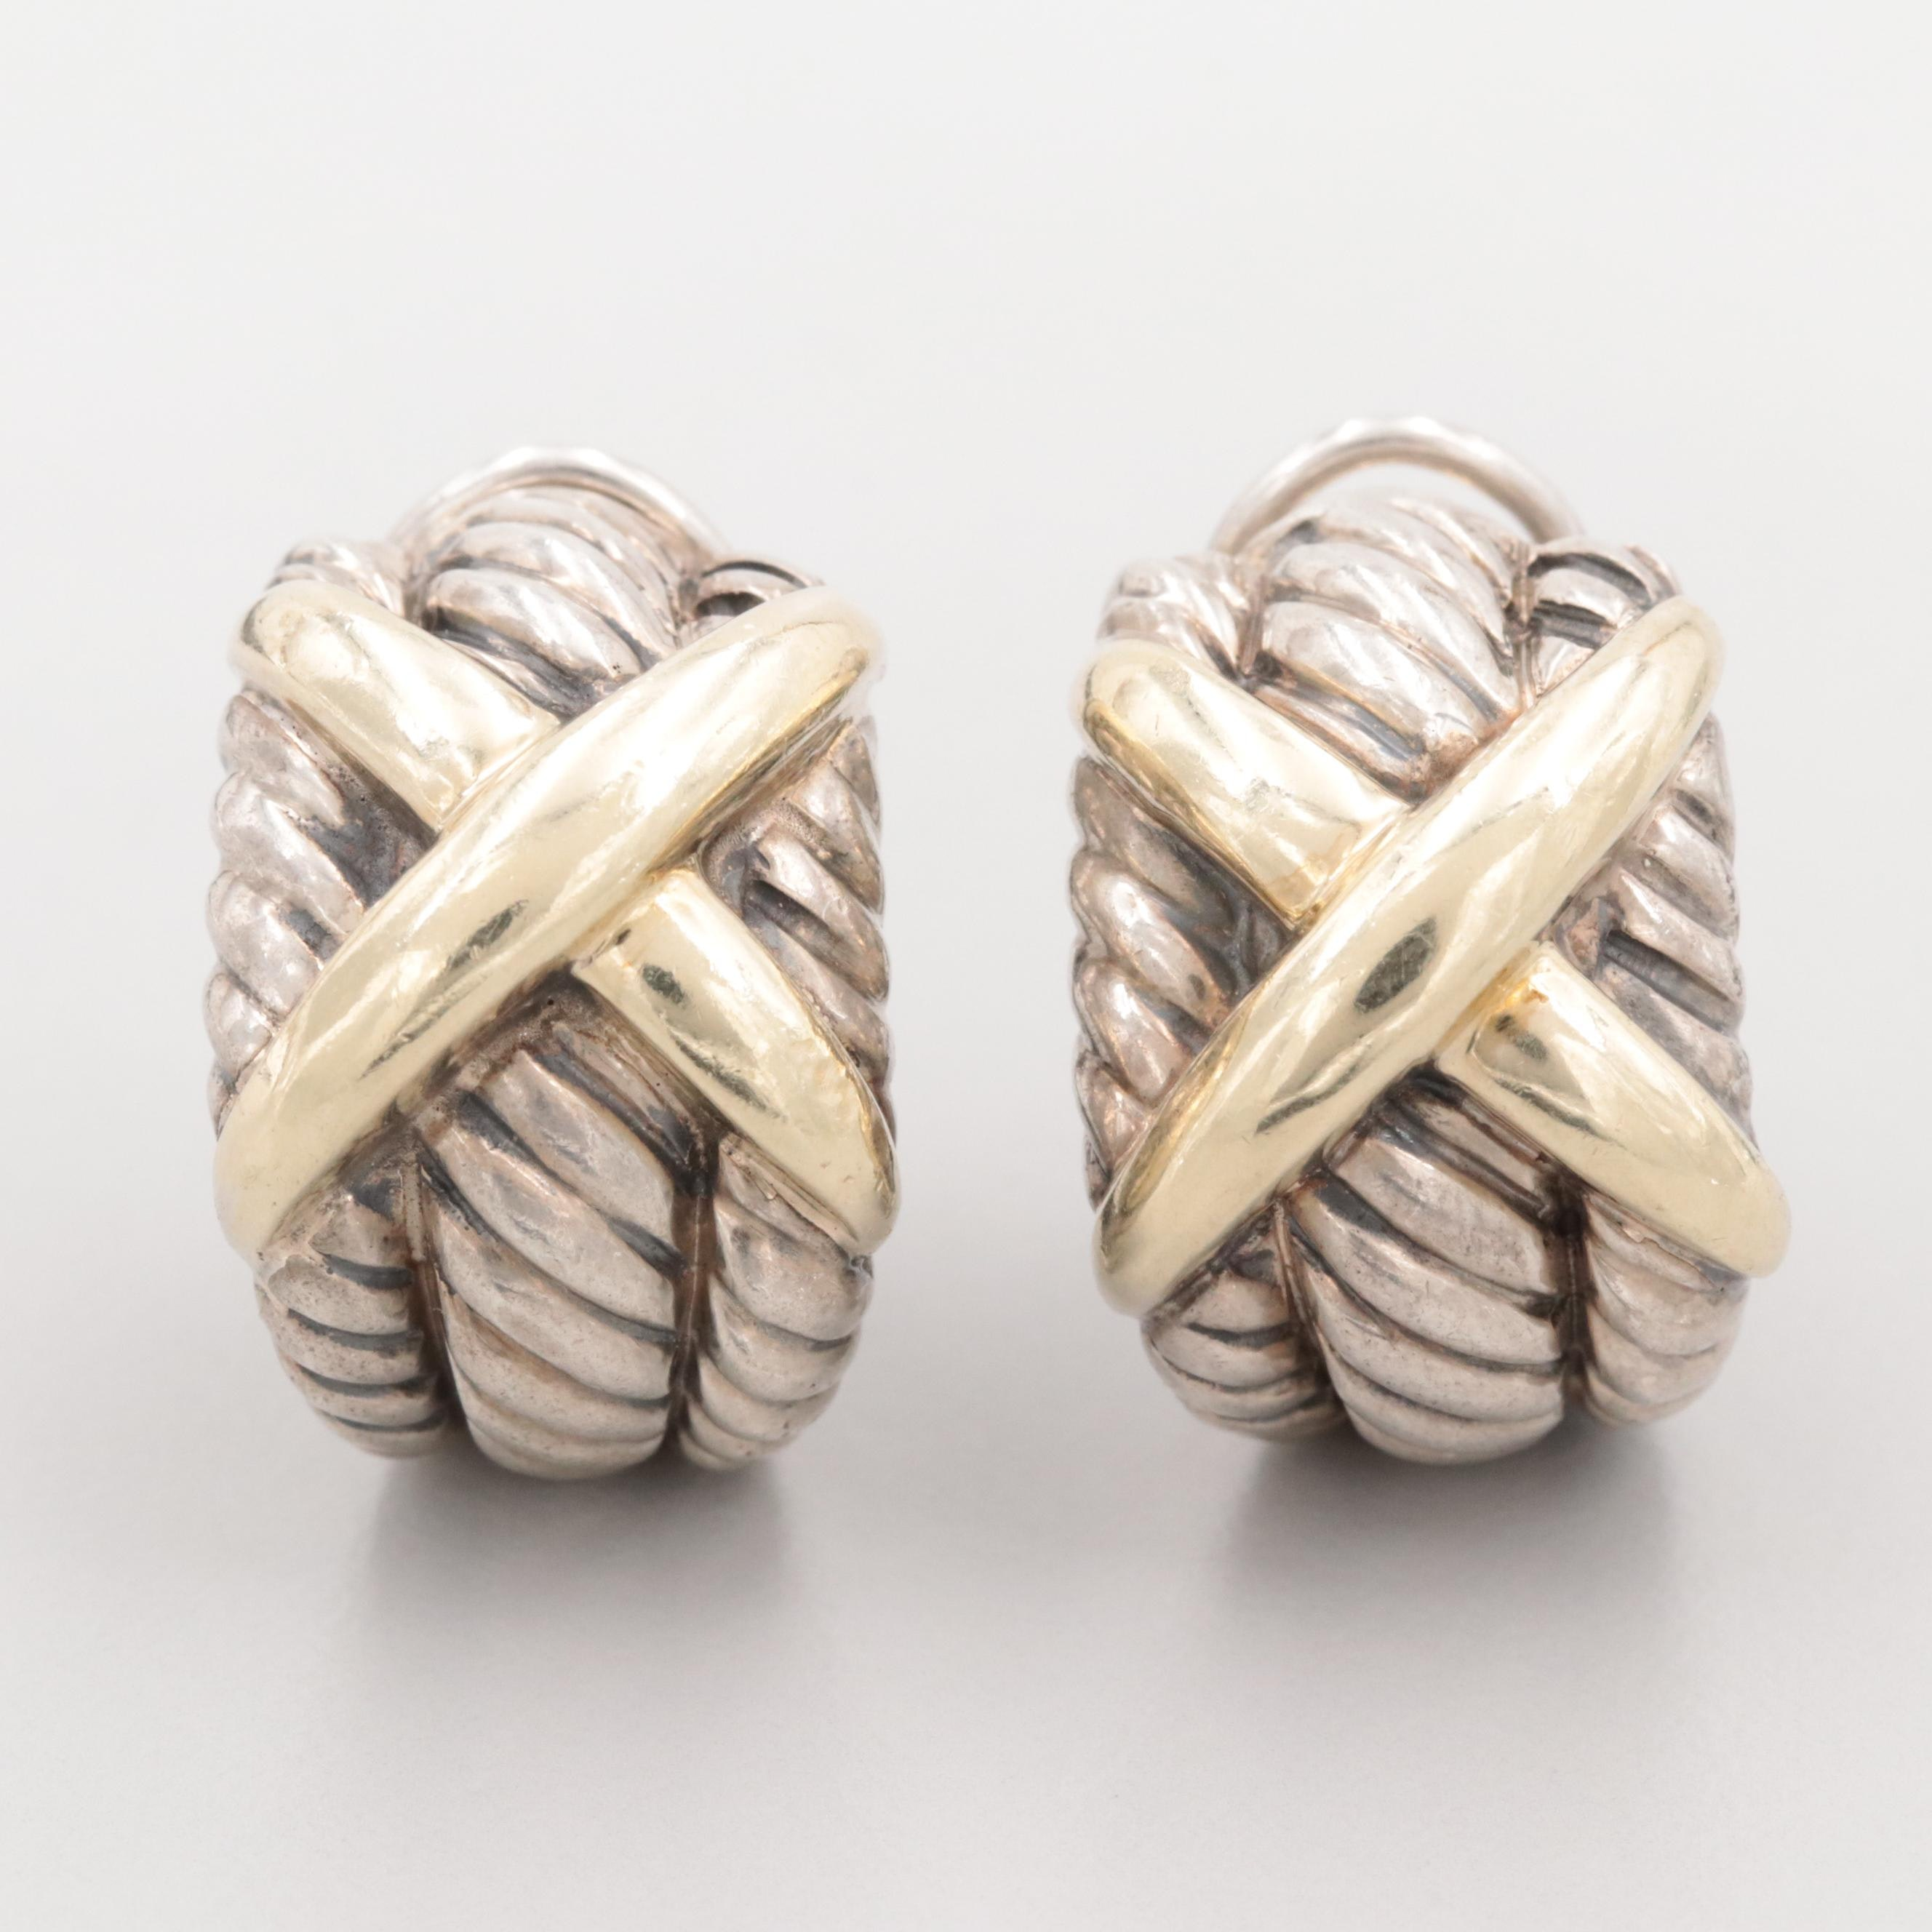 David Yurman Sterling Silver X Cable Earrings With 14K Yellow Gold Accents